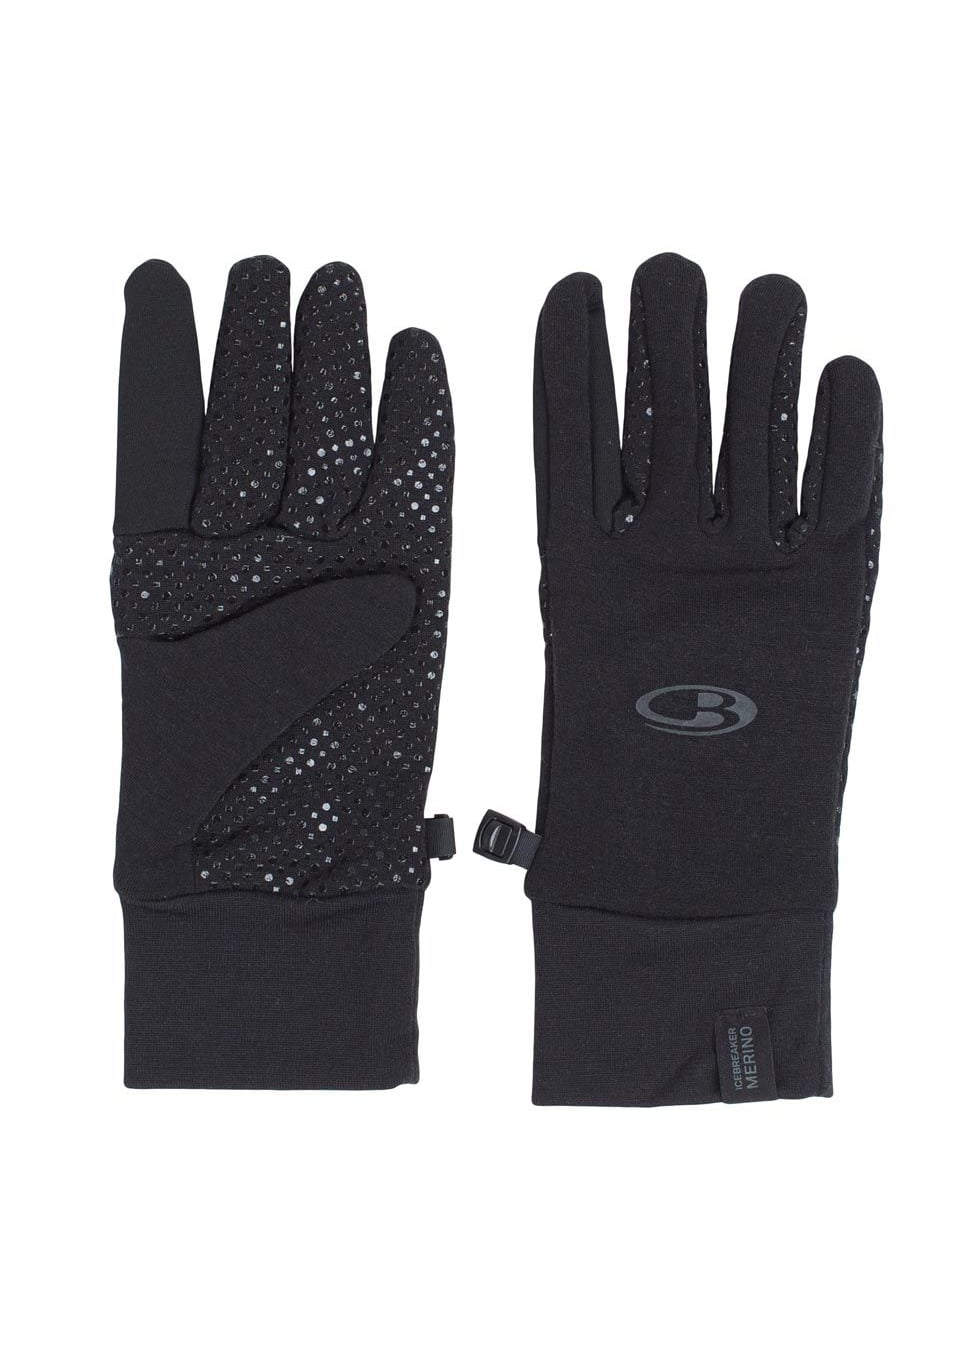 Icebreaker Sierra Grip Gloves  Large Image